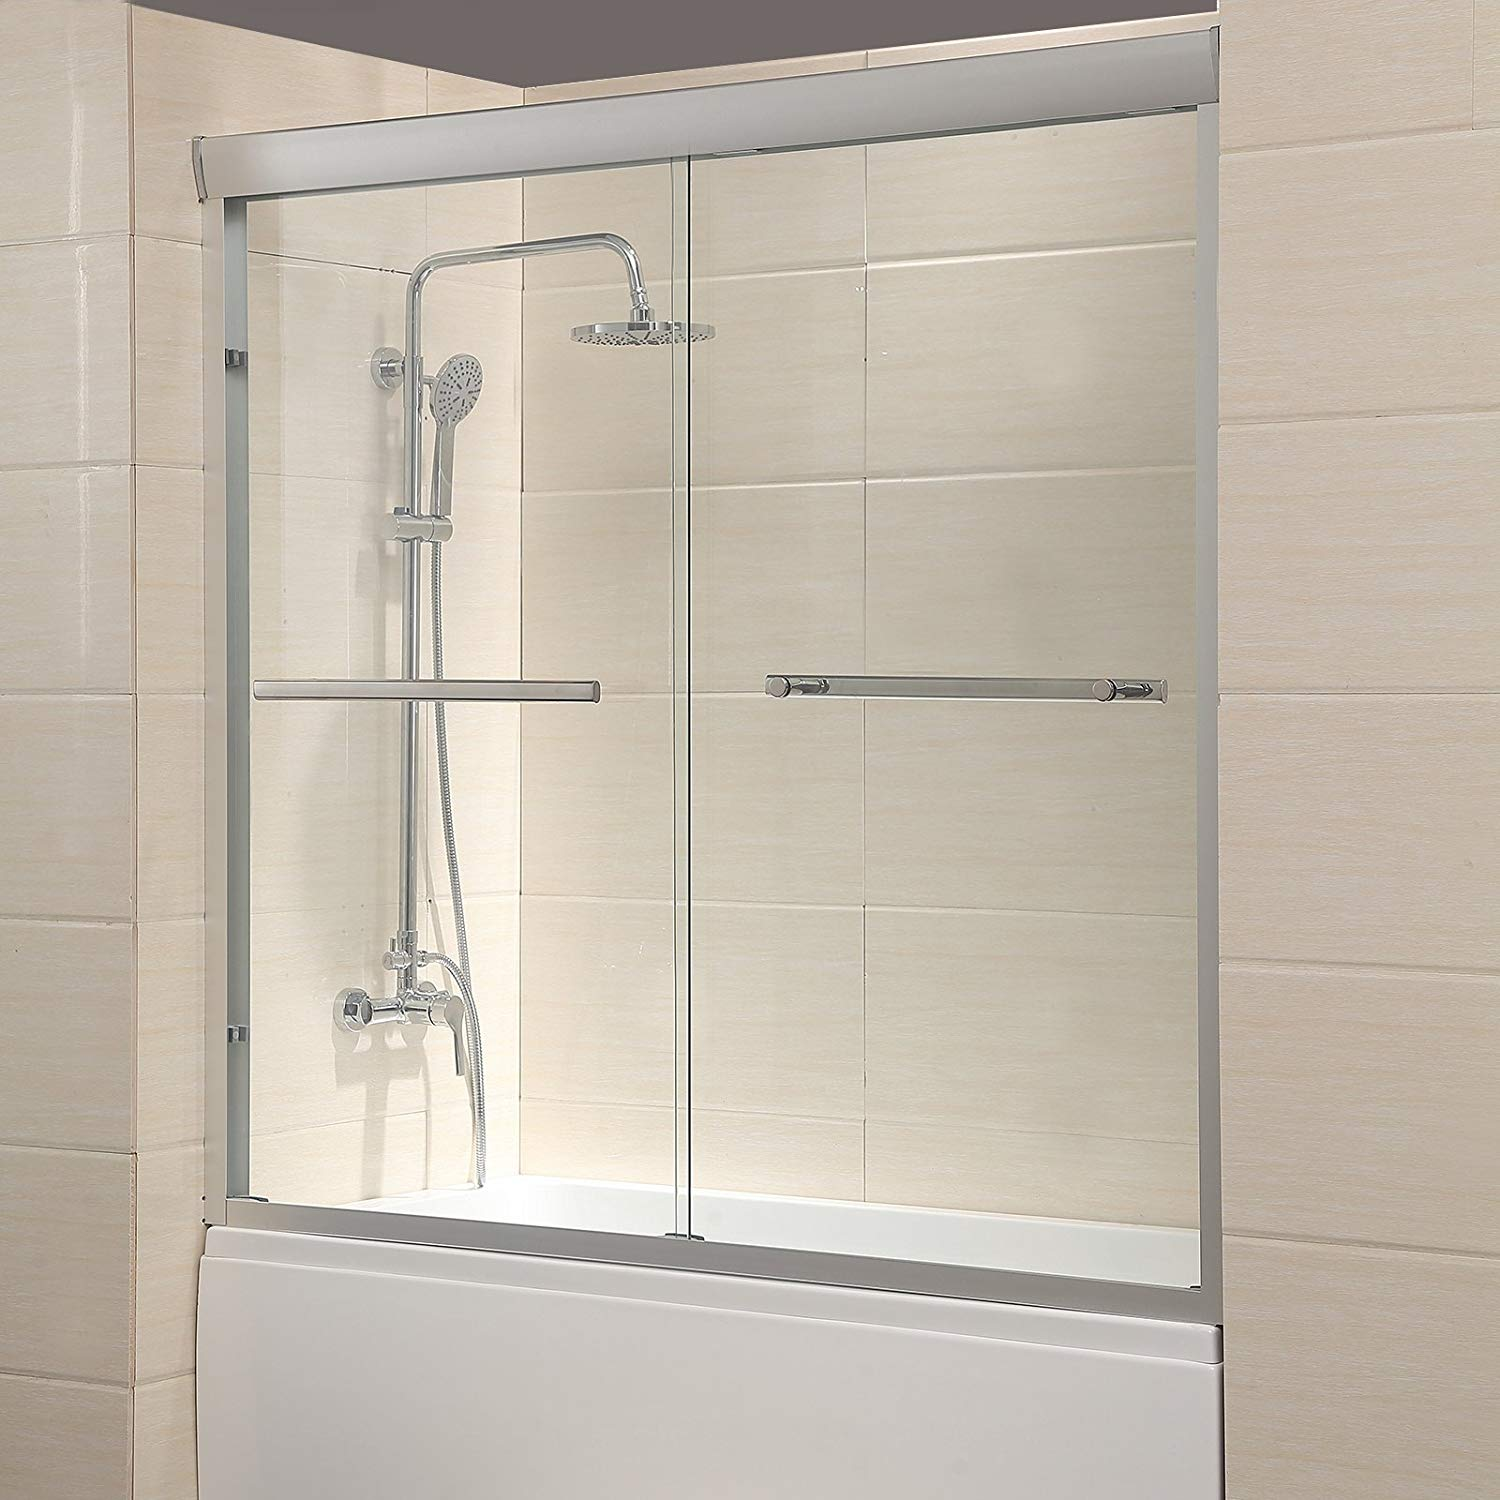 Mecor Framed Bathtub Sliding Glass Shower Door